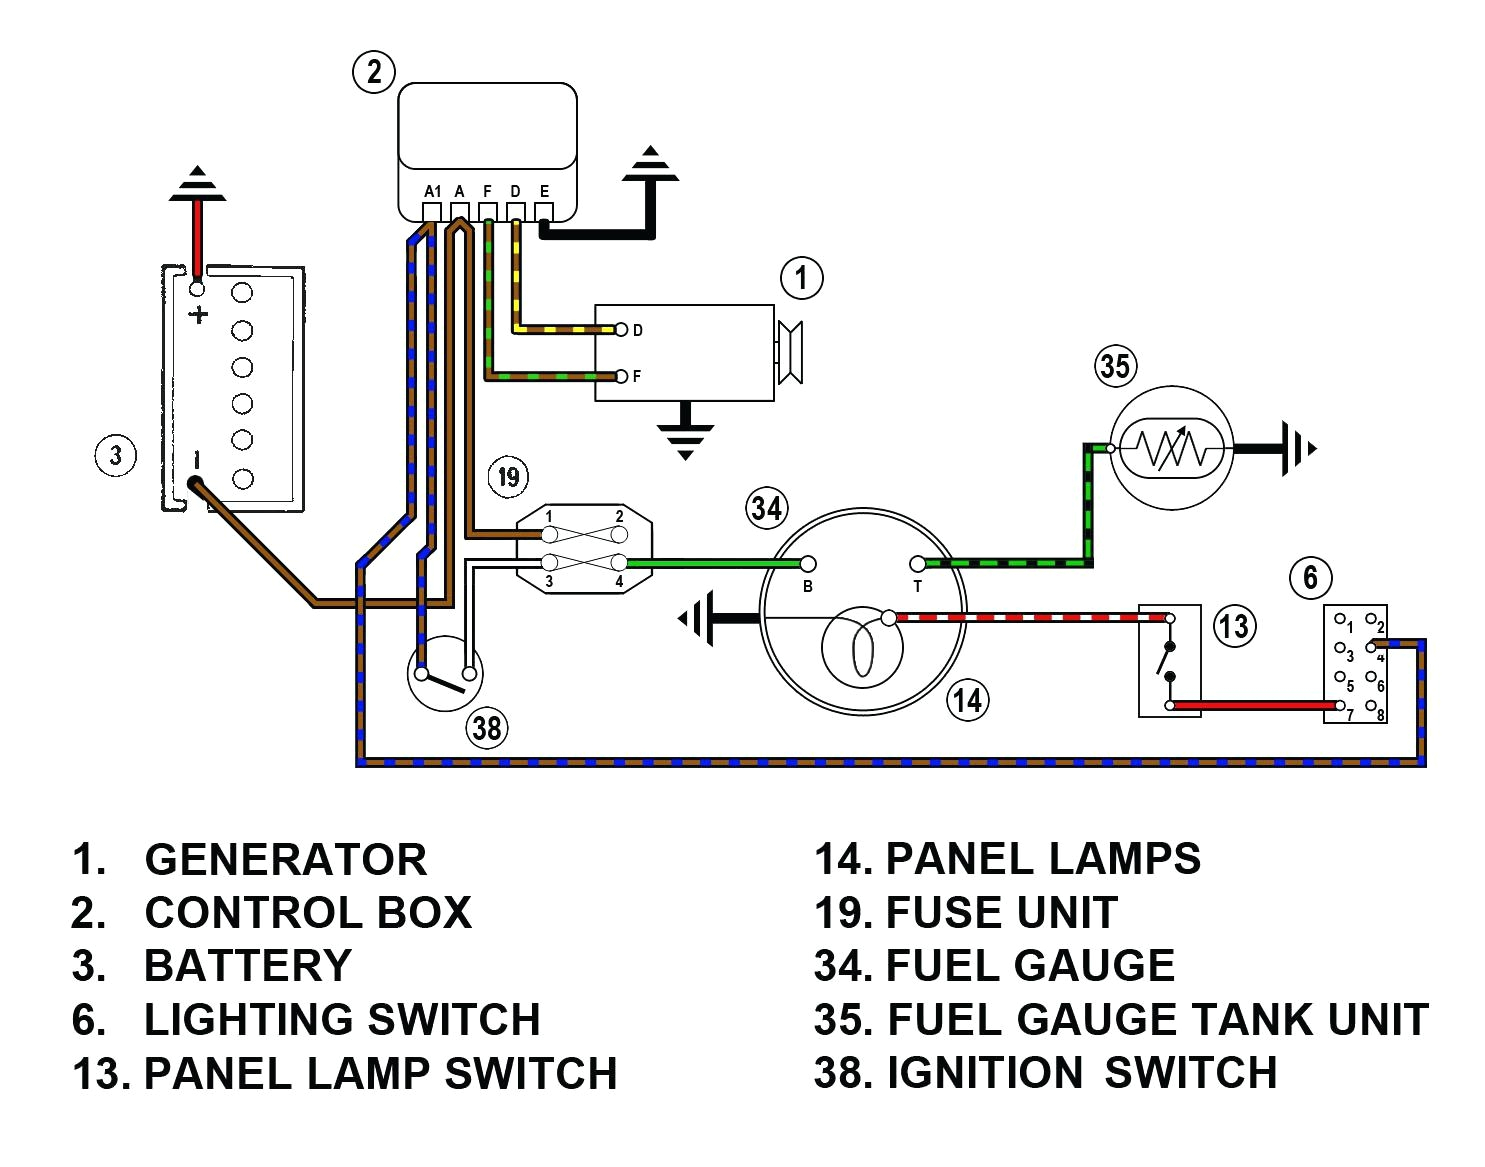 Emg solderless Wiring Kit Diagram Emg 89 Wiring Diagram Wiring Diagram Show